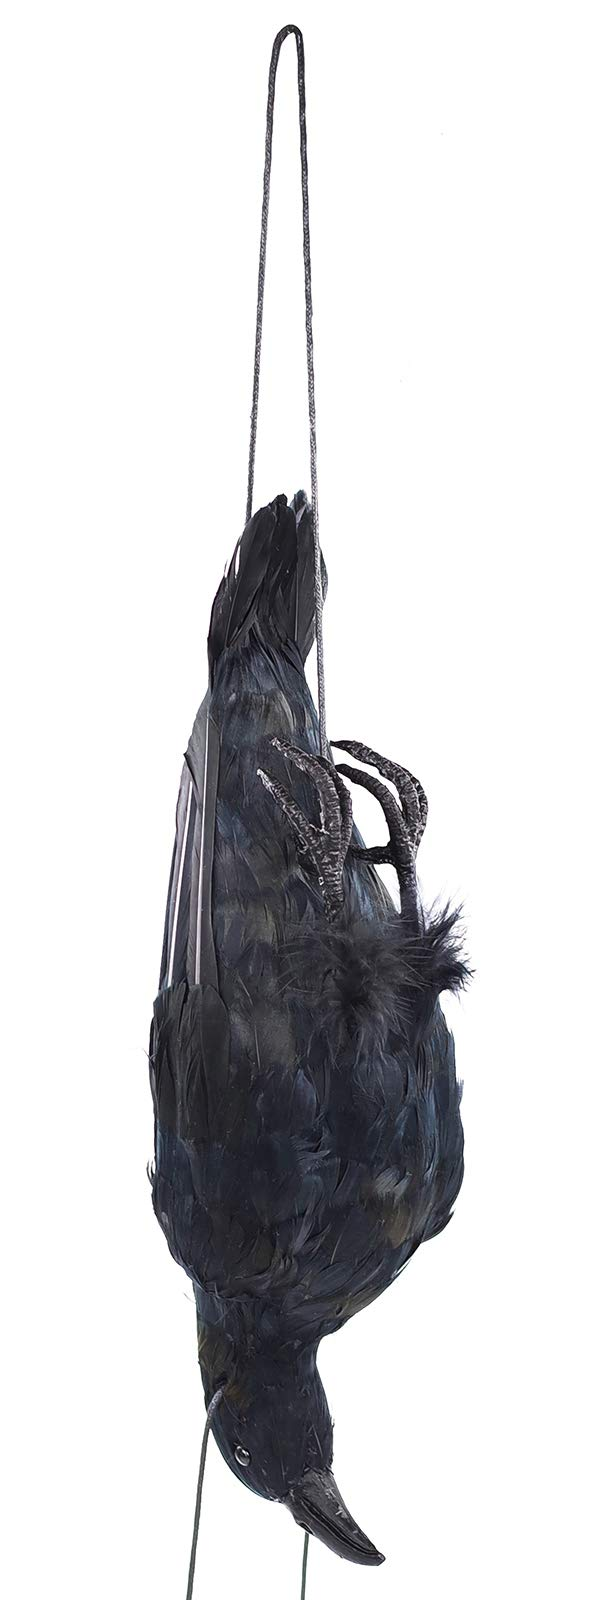 17 inch Realistic Hanging Dead Crows Decoy Lifesize Extra Large Black Feathered Scare Deterrent Crow by Festar